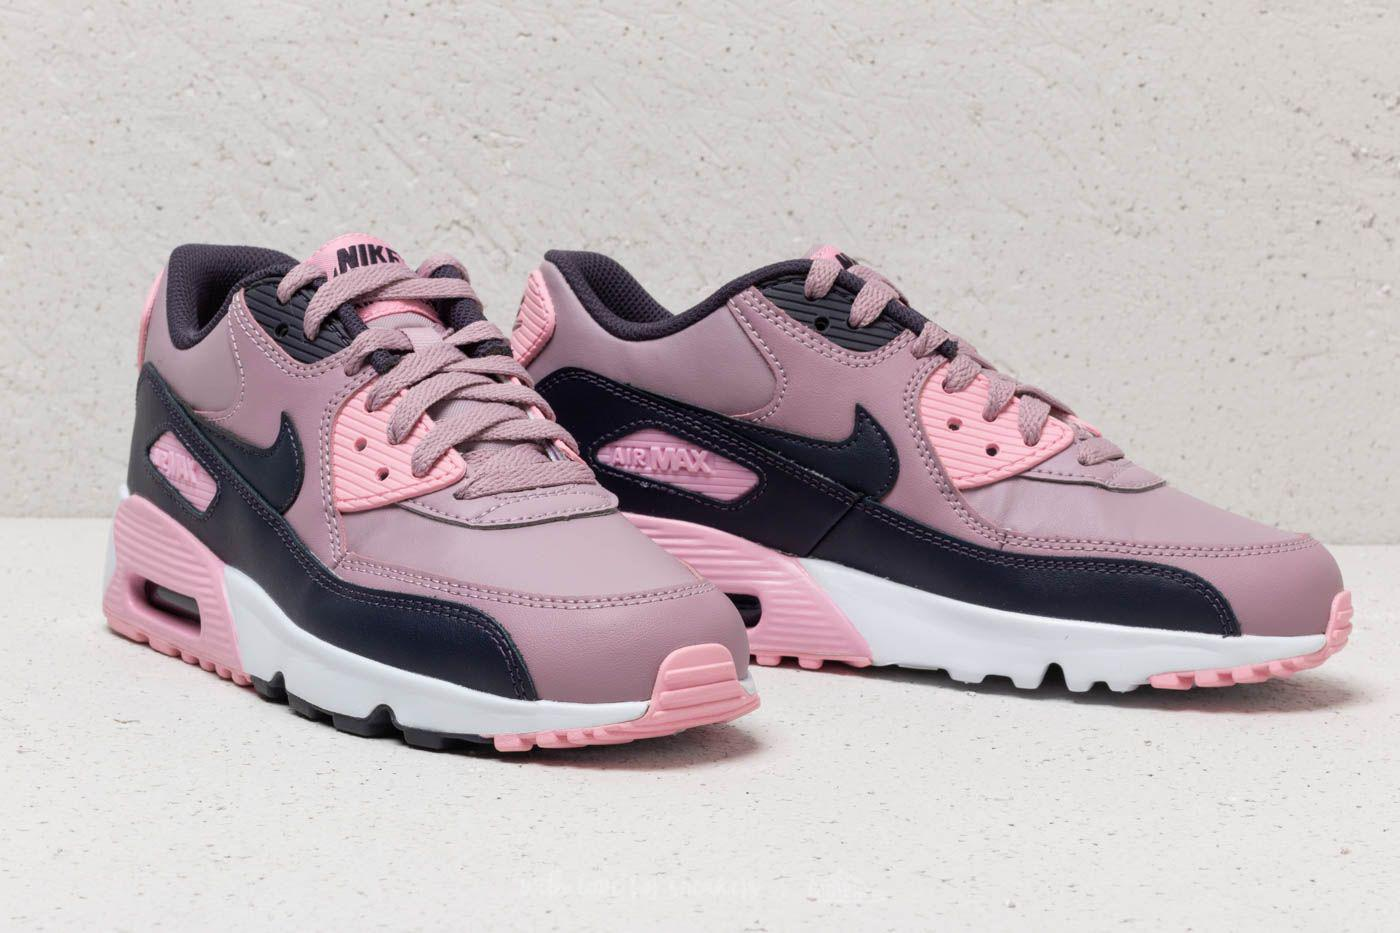 quality design a6e33 f4436 ... top quality nike air max 90 leather gs elemental rose gridiron pink .  view fullscreen a9ad1